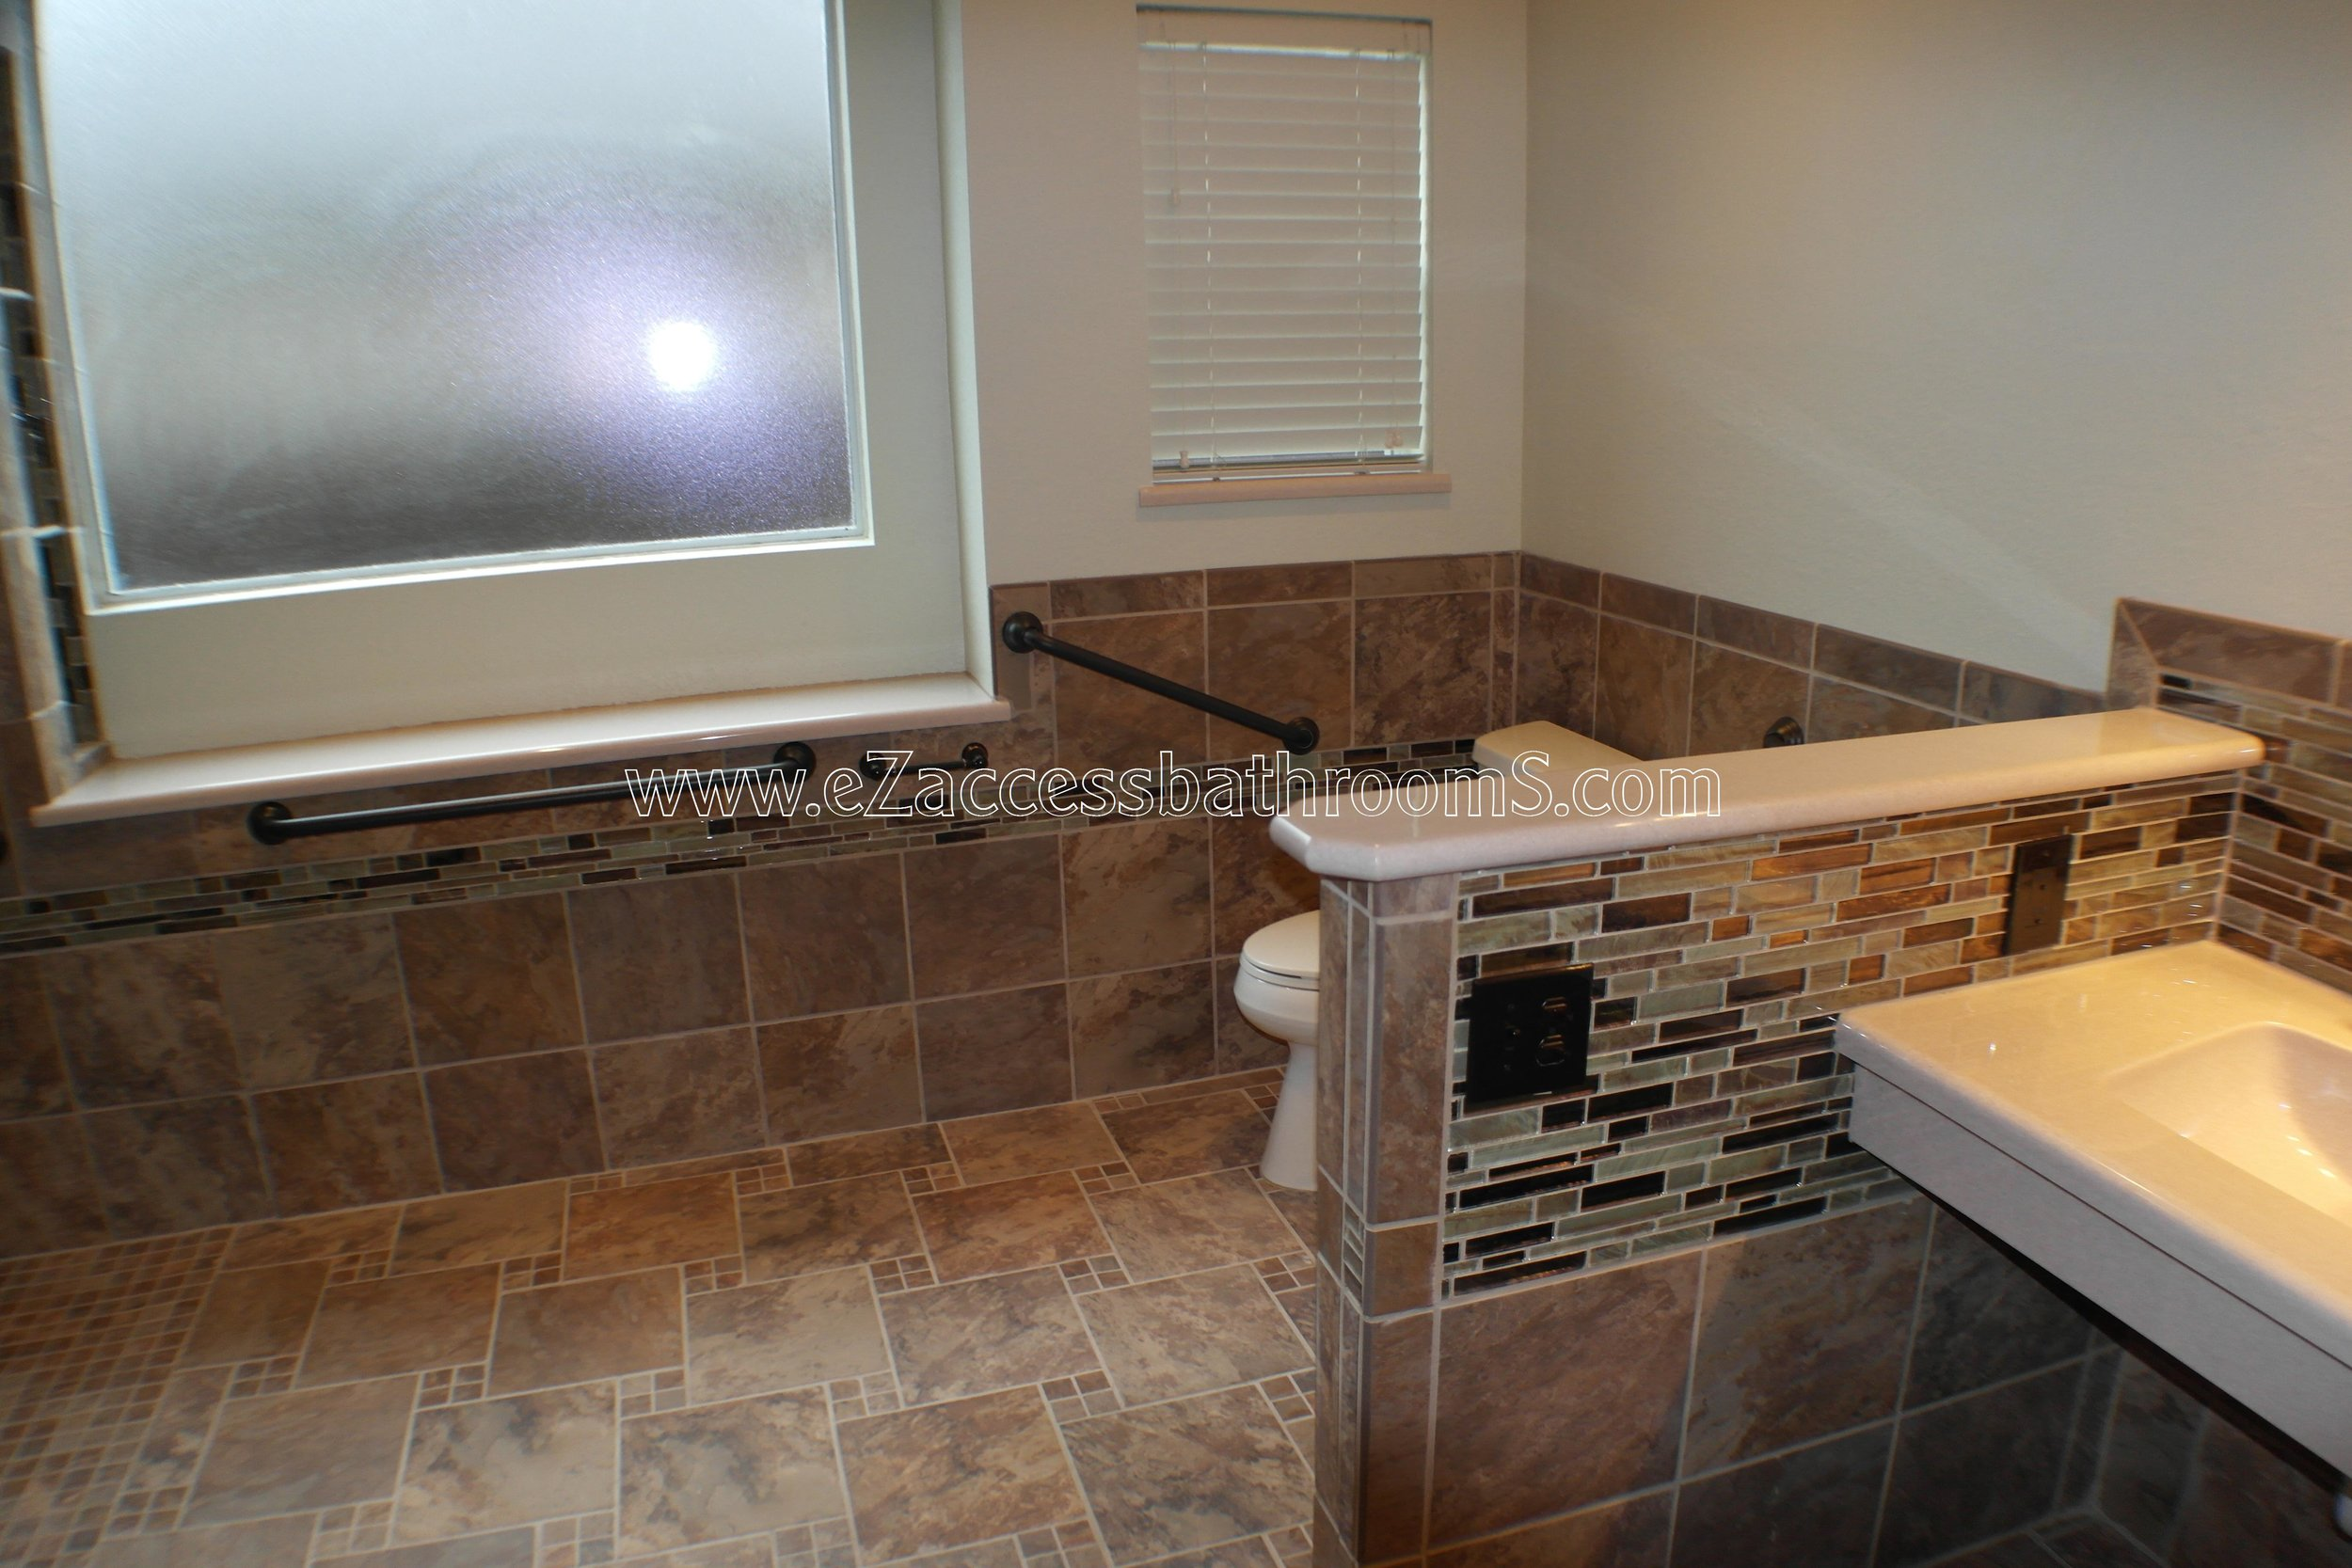 SENIOR FRIENDLY BATHROOMS EZACCESSBATHROOMS.COM 832202843 MOORE 329.JPG